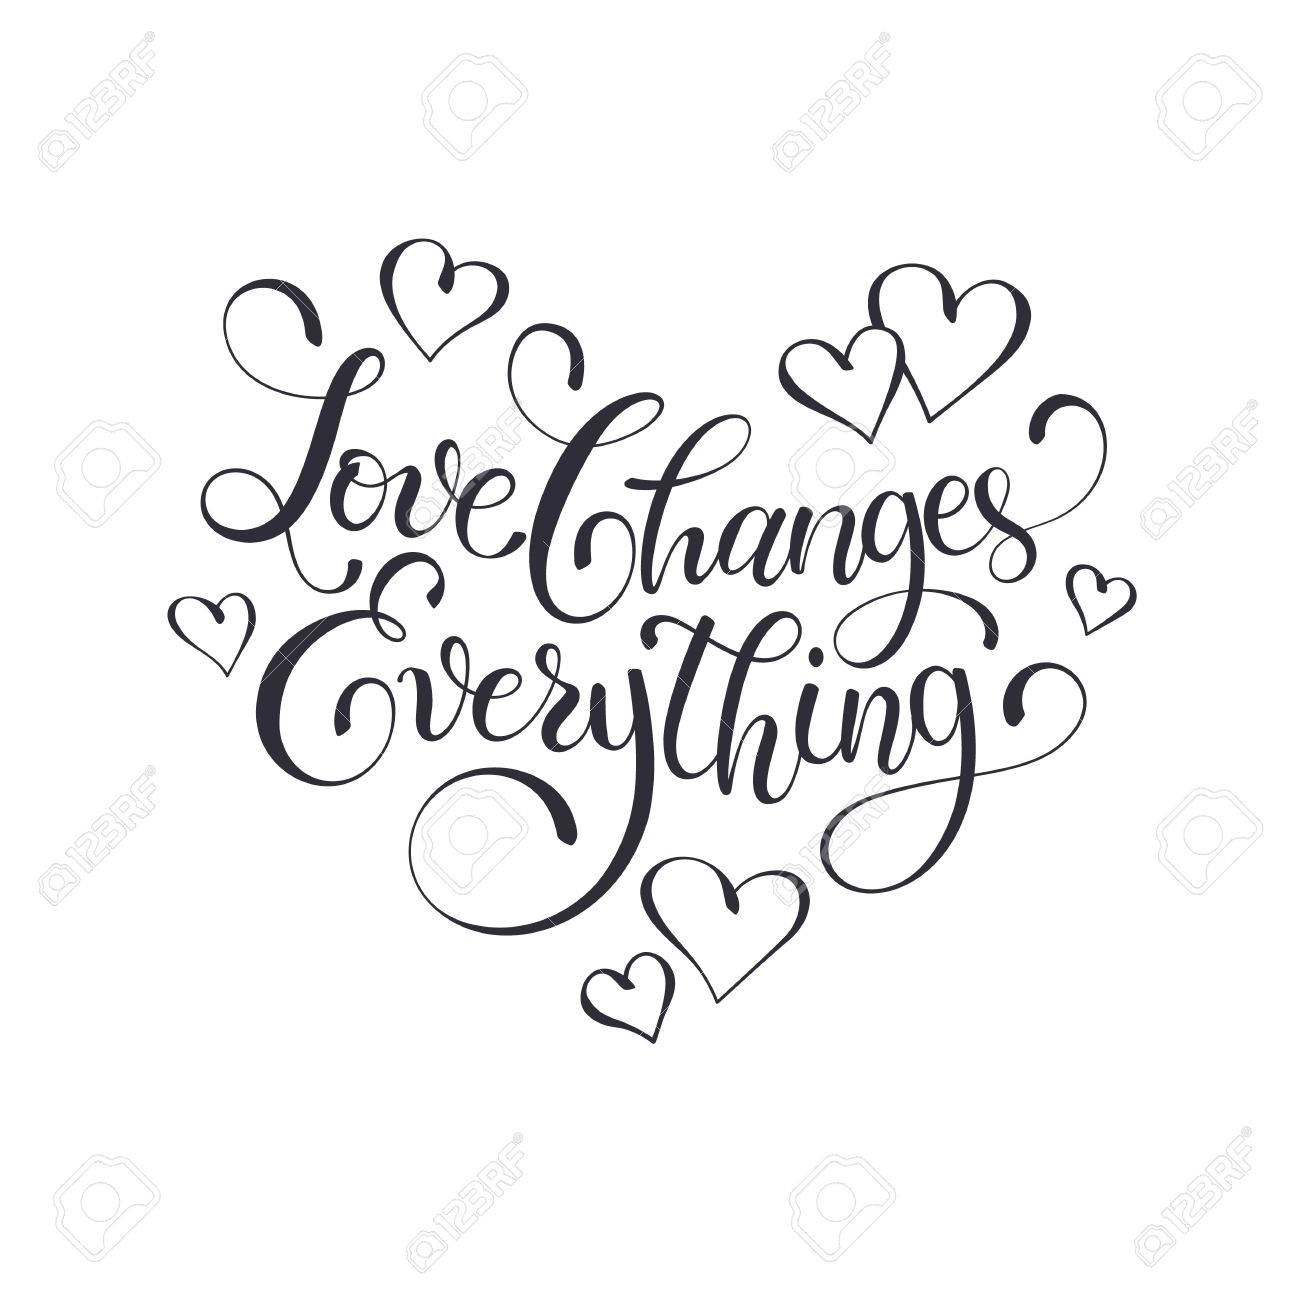 Inspiring lettering black on white love changes everything positive quote with swirls in heart